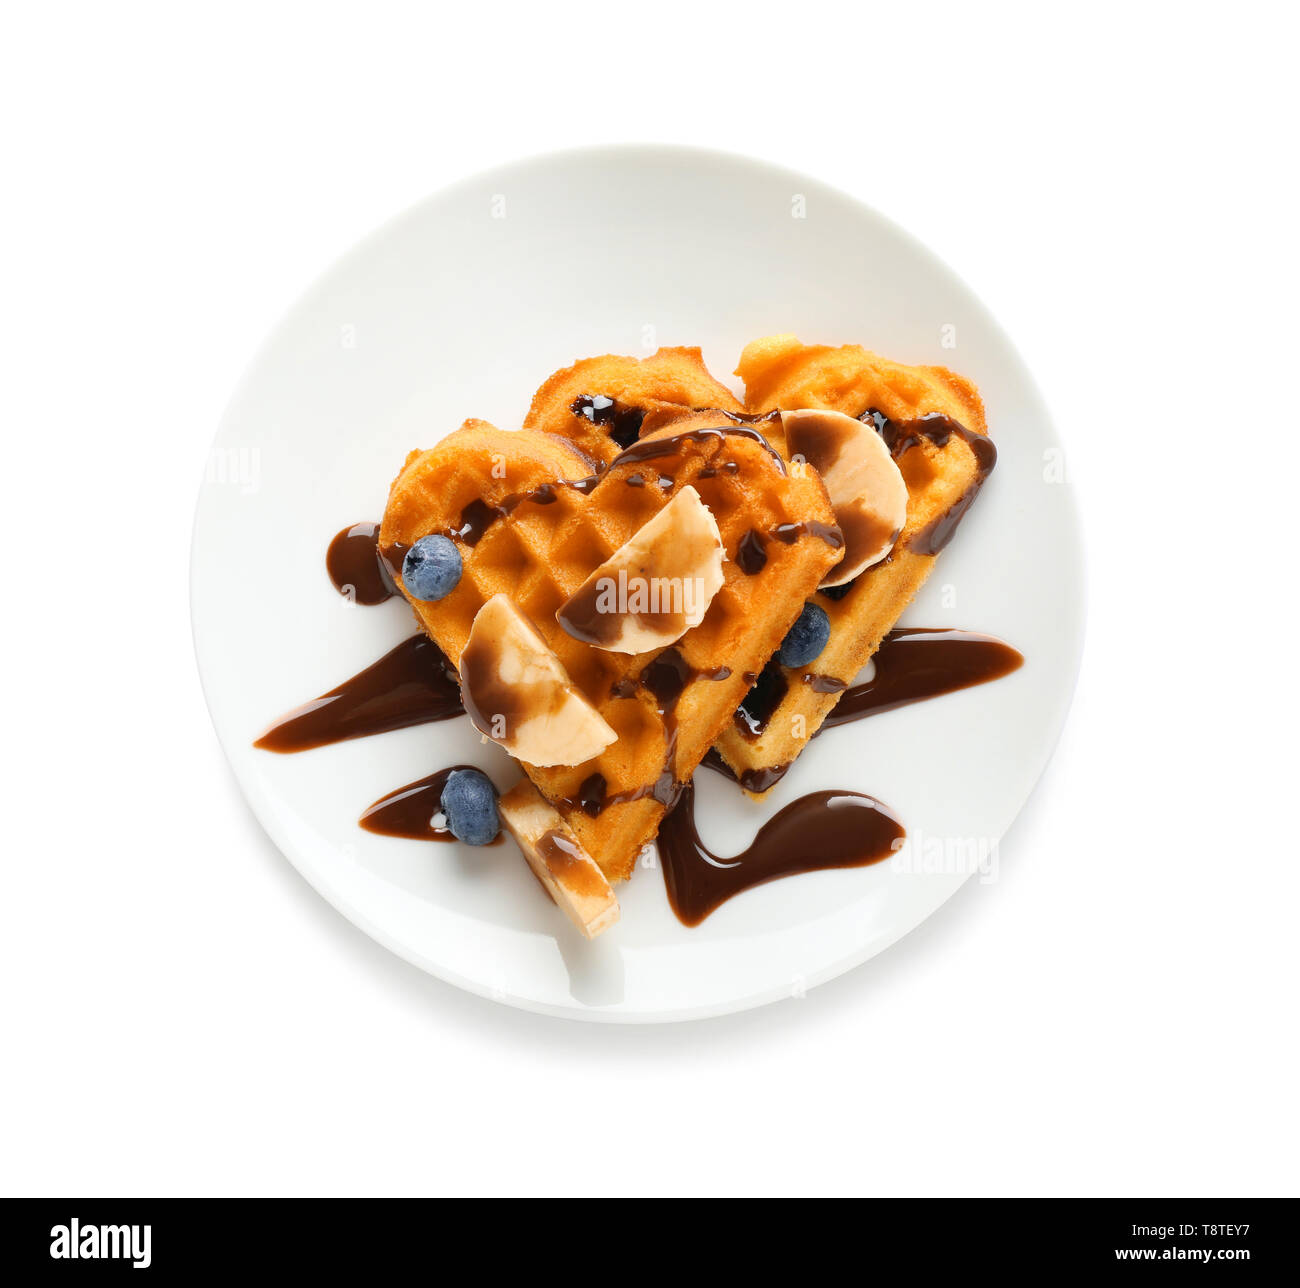 Heart shaped waffles with banana, blueberries and chocolate sauce on white background - Stock Image